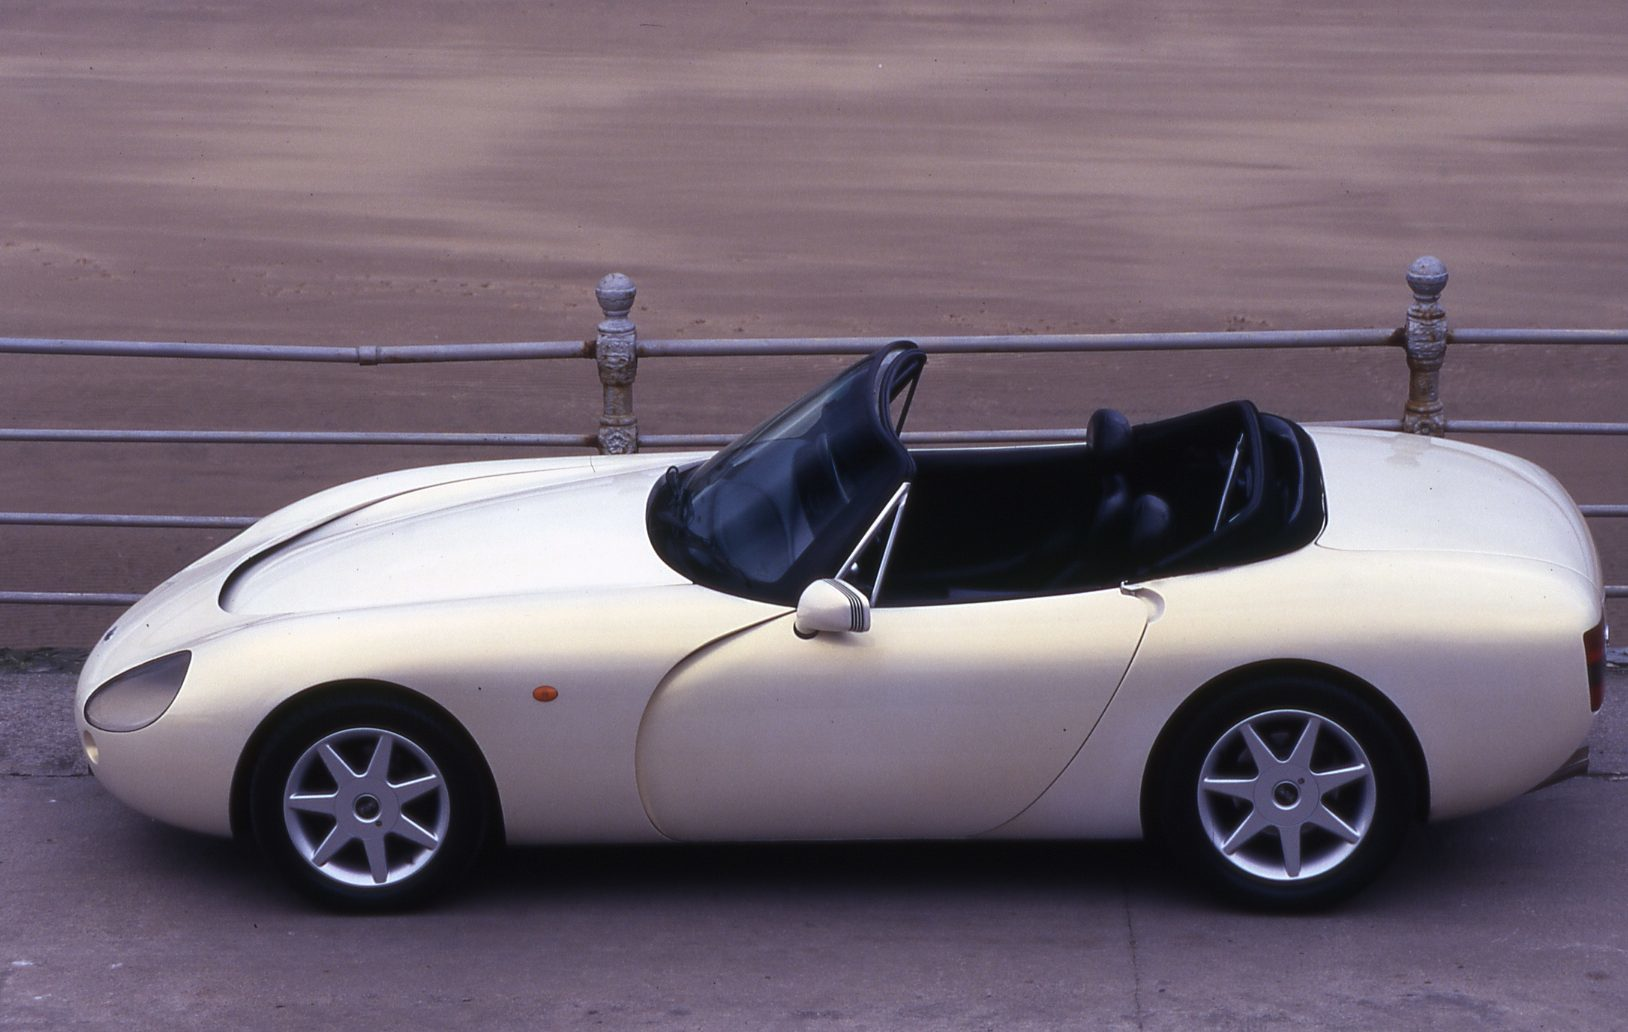 100 tvr tvr chimaera used car buying guide autocar new tvr could revive the griffith name. Black Bedroom Furniture Sets. Home Design Ideas